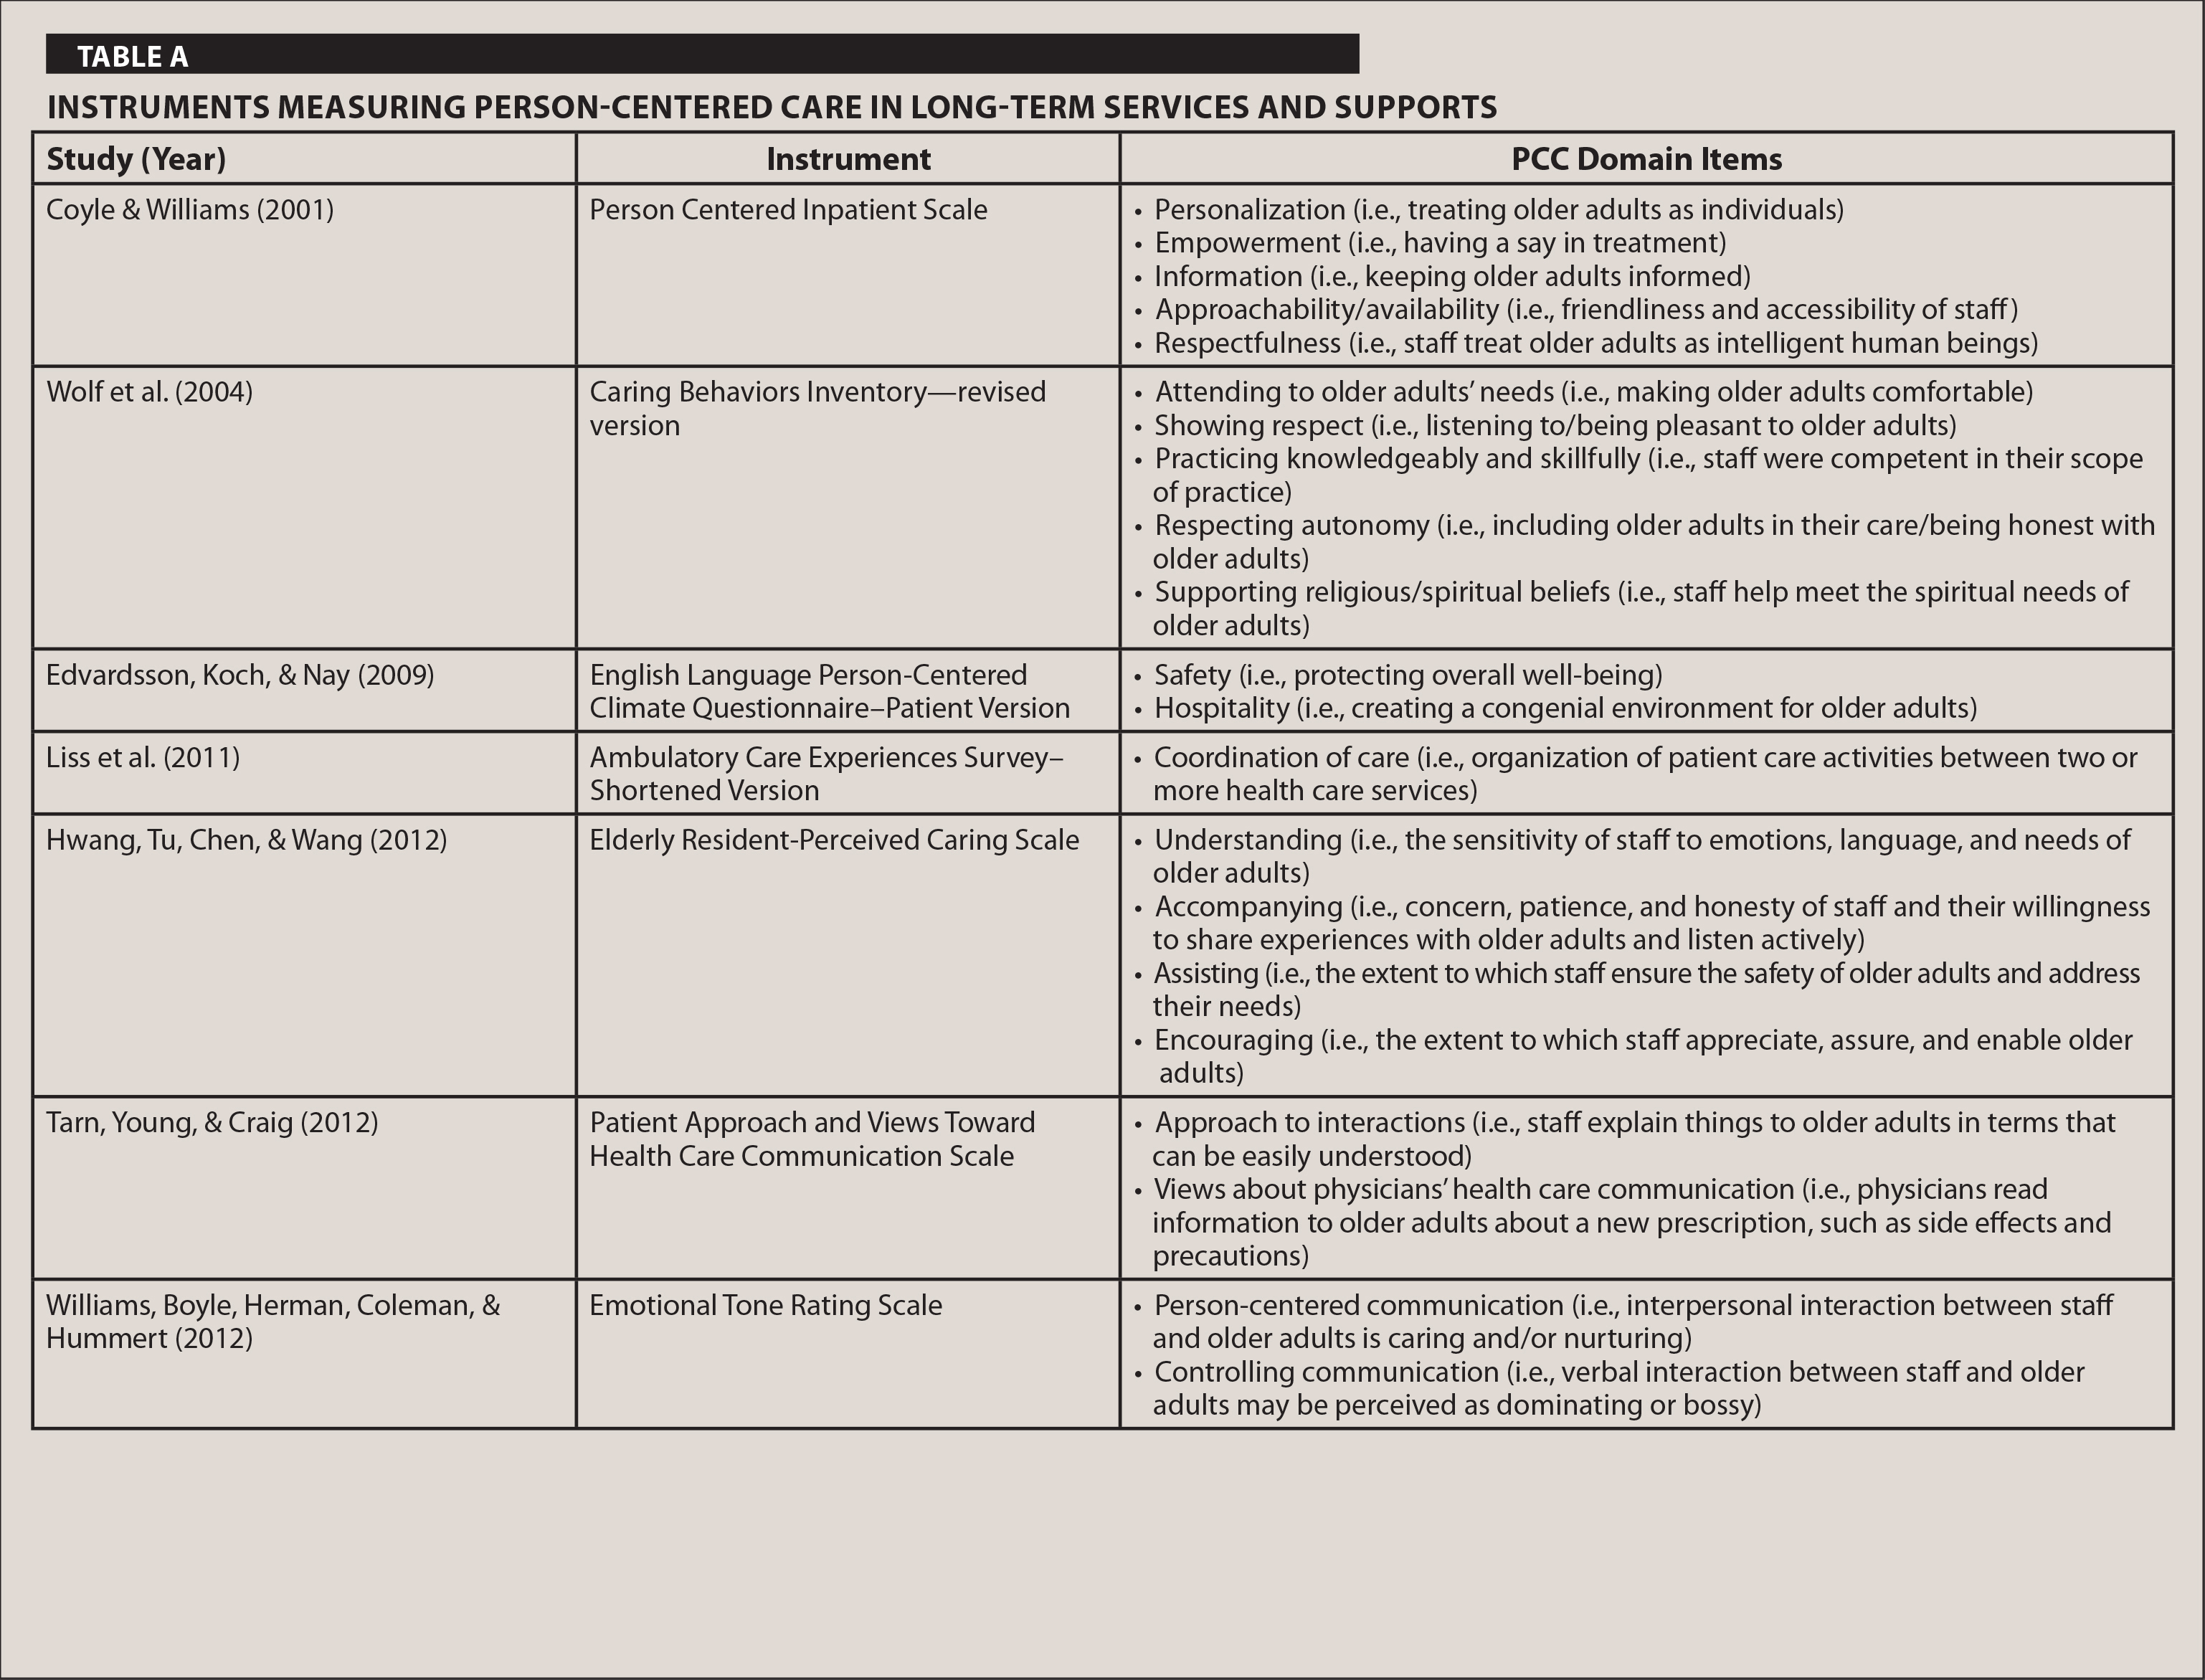 Instruments Measuring Person-Centered Care in Long-Term Services and Supports